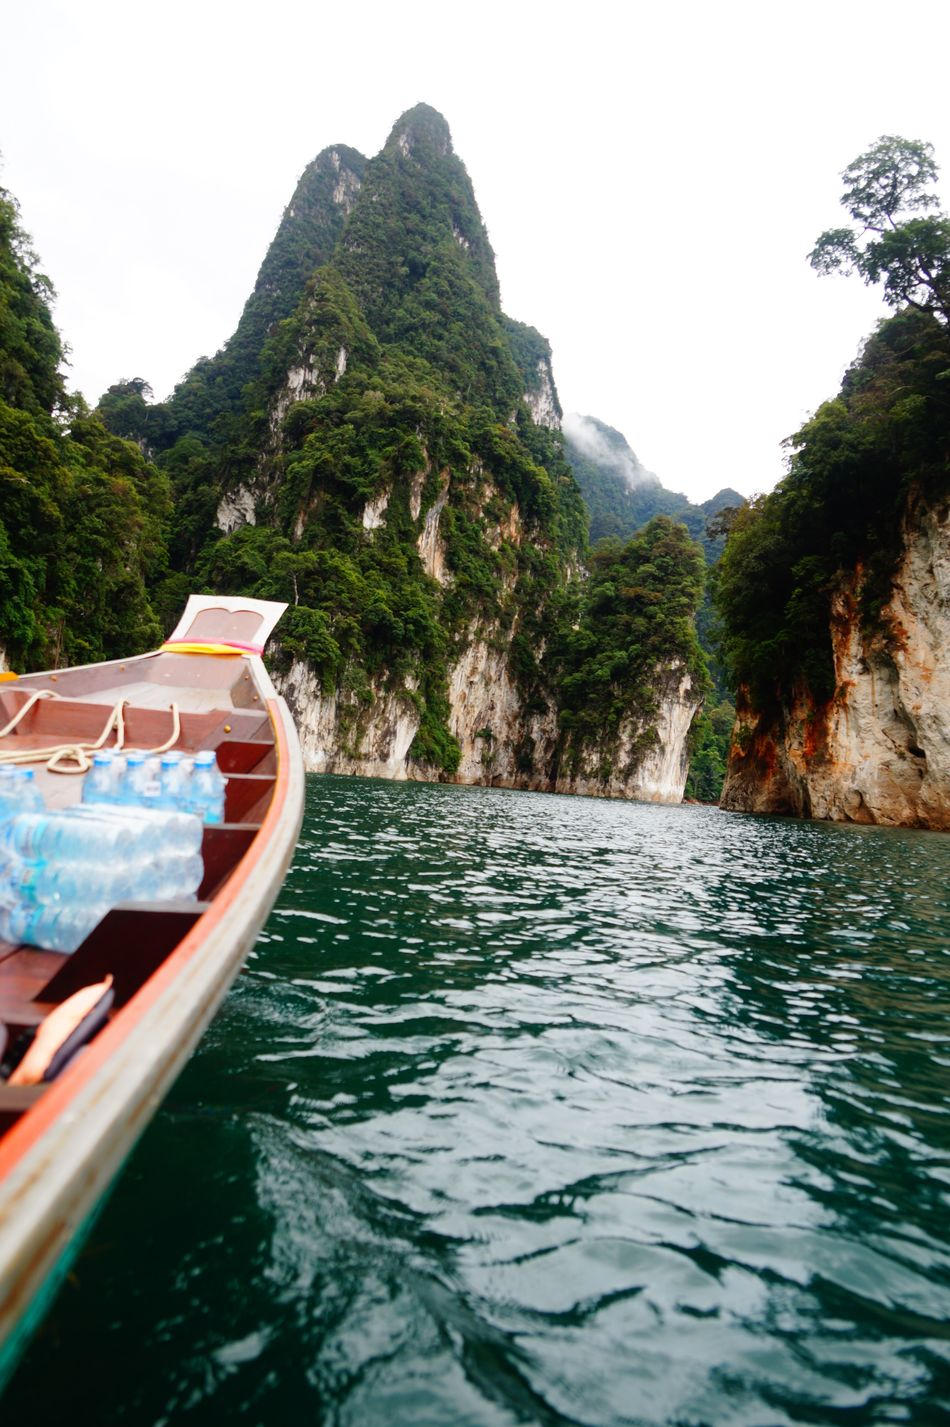 Beauty In Nature Day Khao Sok Longtail Boat Mode Of Transport Moored Mountain Nature Nautical Vessel No People Outdoors Rock - Object Scenics Sea Sky Thailand Tranquility Transportation Travel Destinations Tree Vacations Water